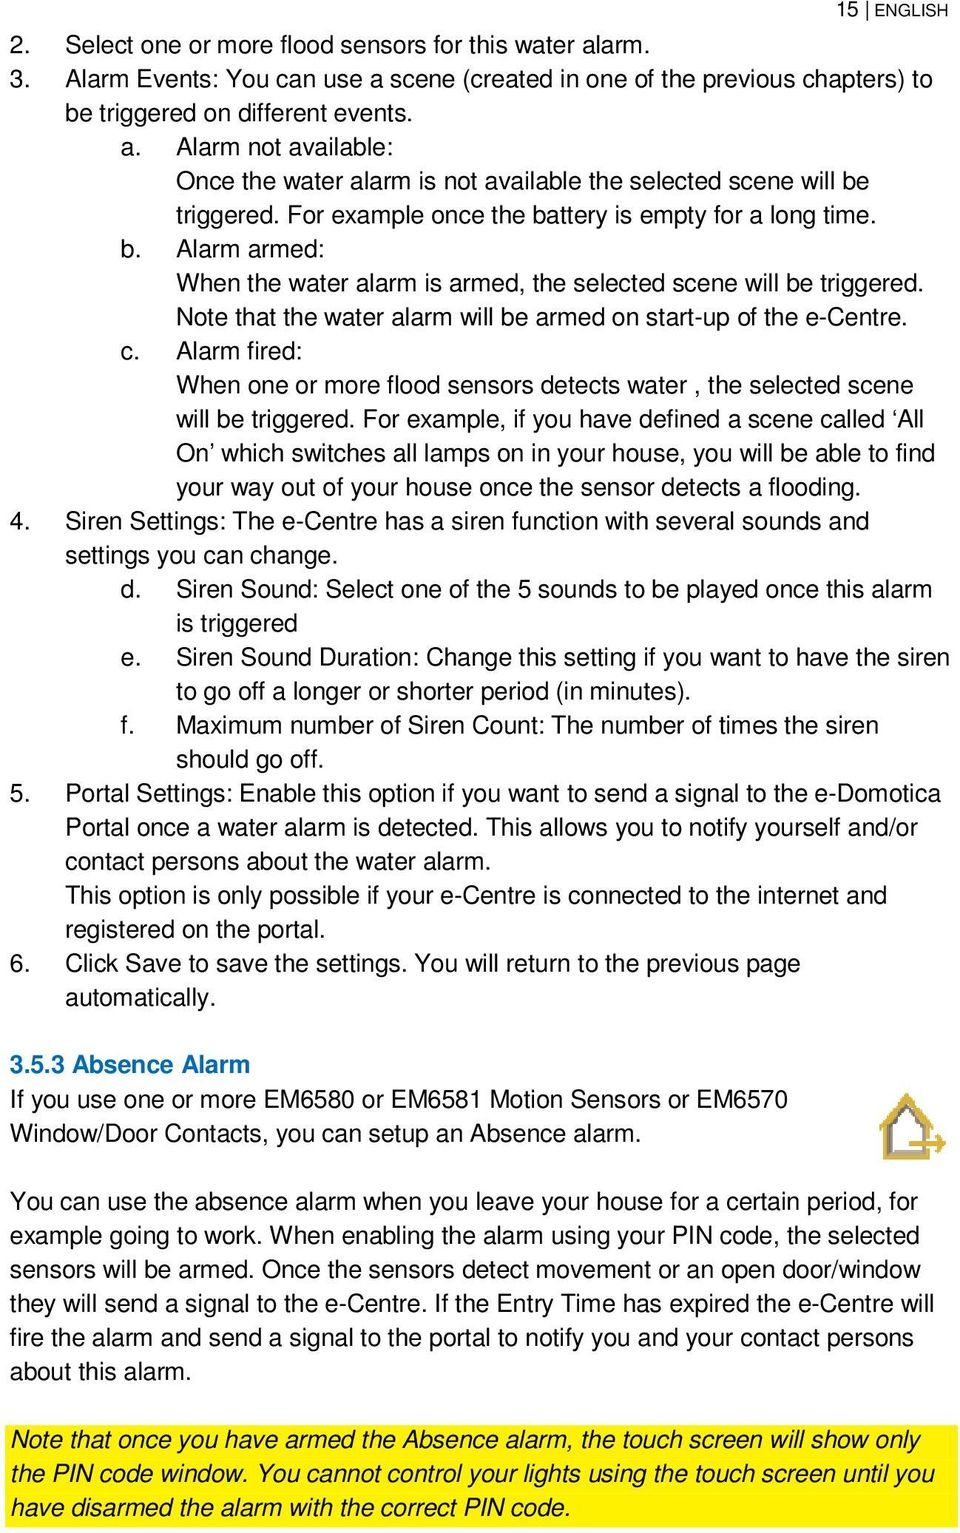 Note that the water alarm will be armed on start-up of the e-centre. c. Alarm fired: When one or more flood sensors detects water, the selected scene will be triggered.